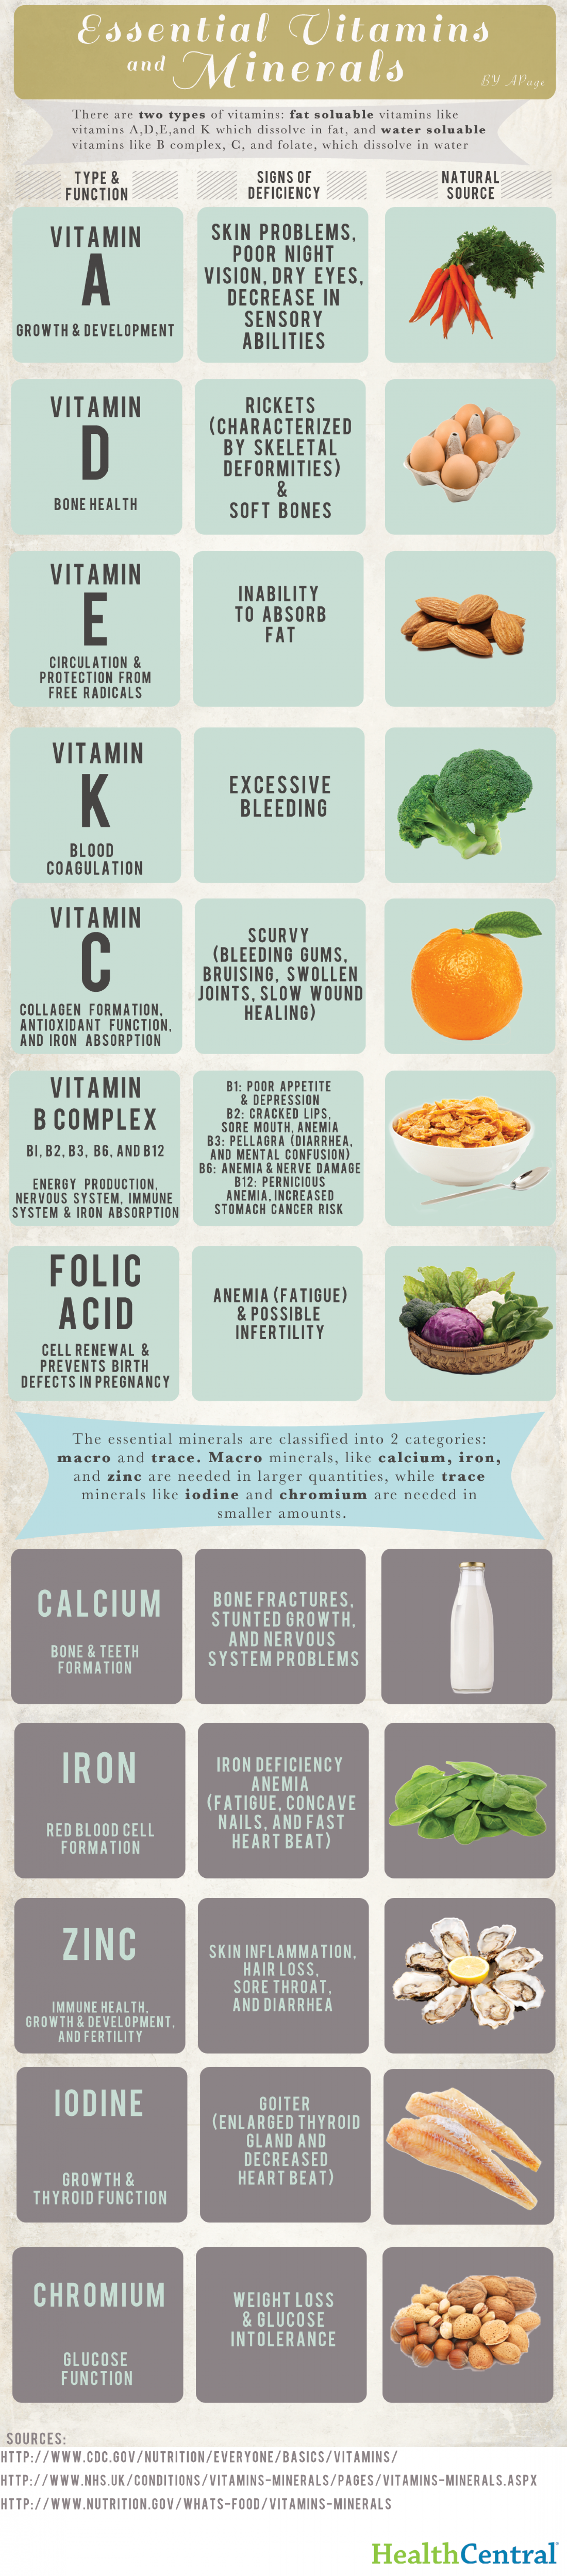 Essential Vitamins and Minerals Infographic